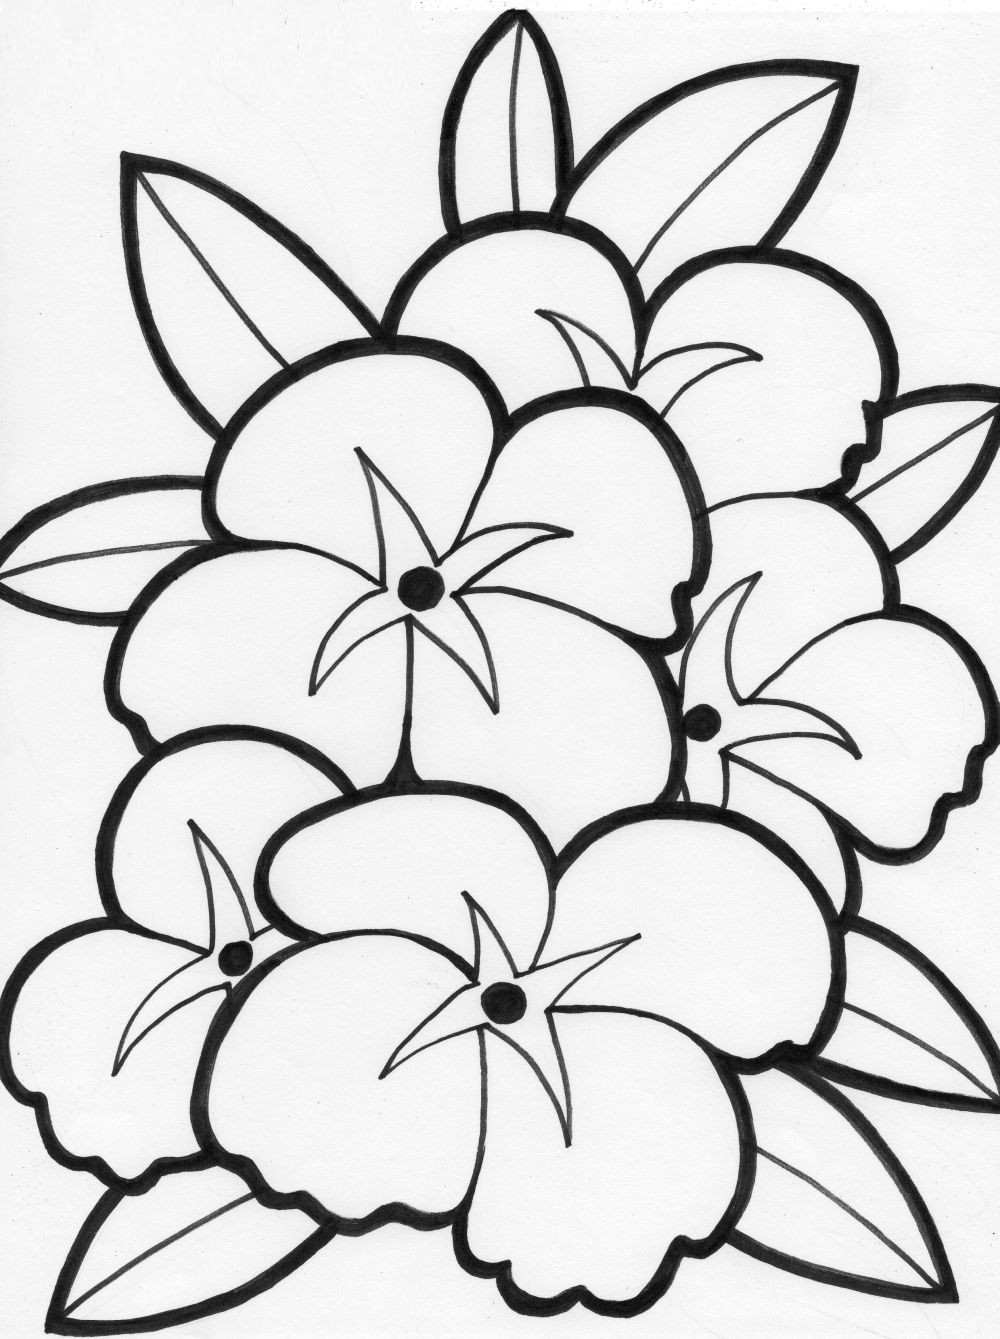 flowers coloring pages free printable - coloring pages of flowers for teenagers difficult